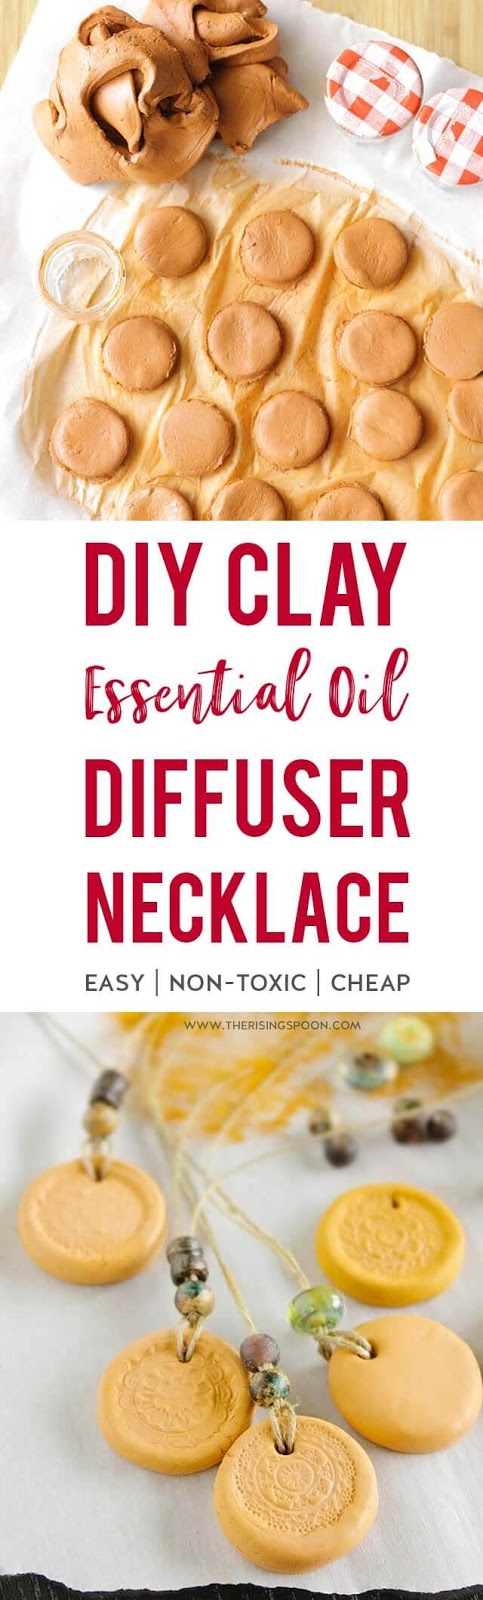 Learn how to make a simple and inexpensive essential oil diffuser necklace using air dry terra cotta clay and your favorite cord material. Decorate it with a rubber stamp and beads to make it look extra special while you enjoy wonderful aromatherapy benefits. This craft project is easy enough for kids to help out and makes a wonderful homemade gift all year long.